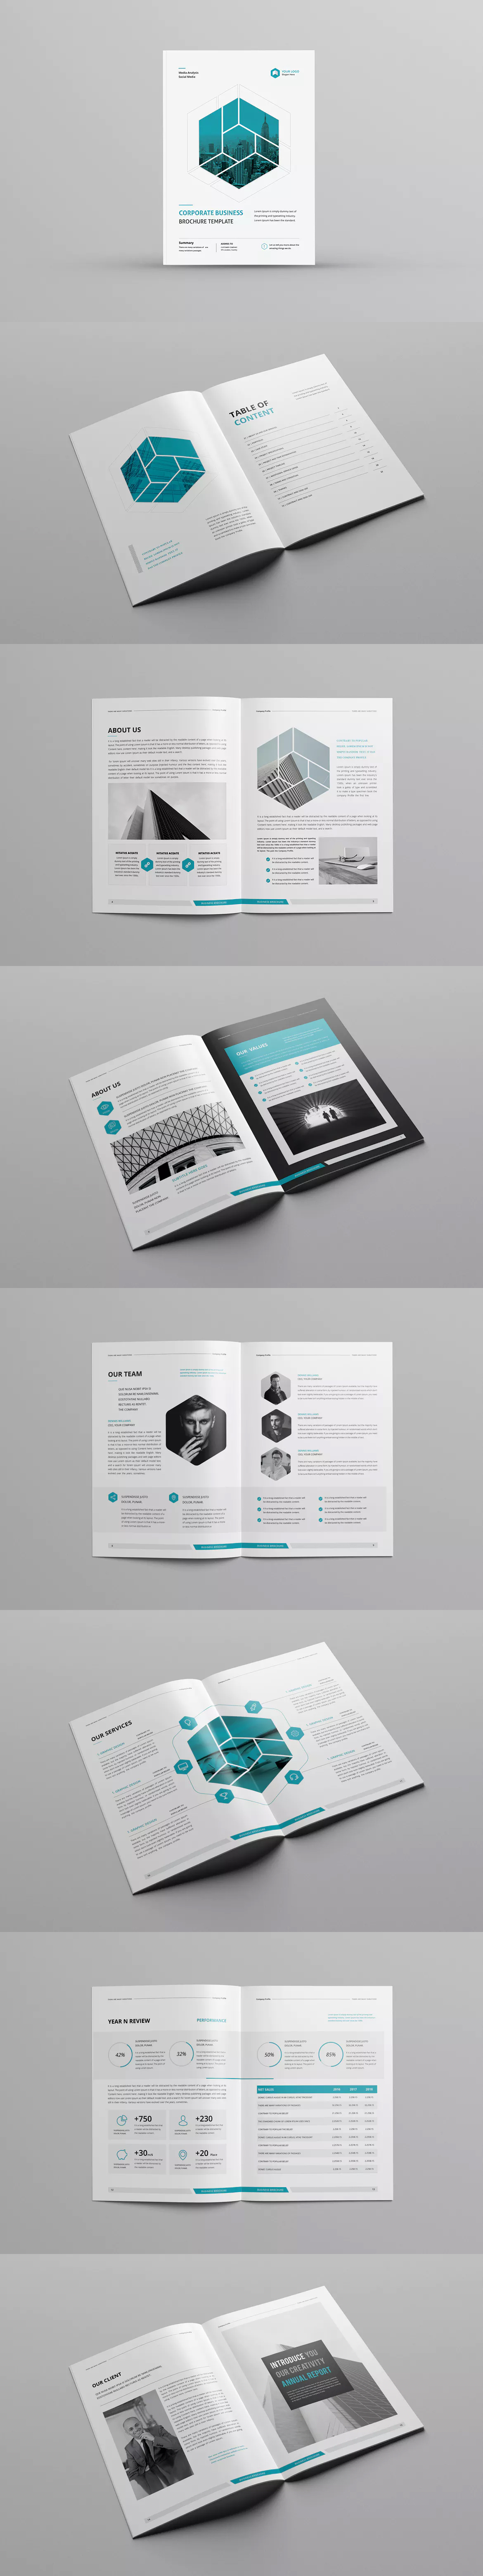 Company Profile Template InDesign INDD A4 | Layouts | Pinterest